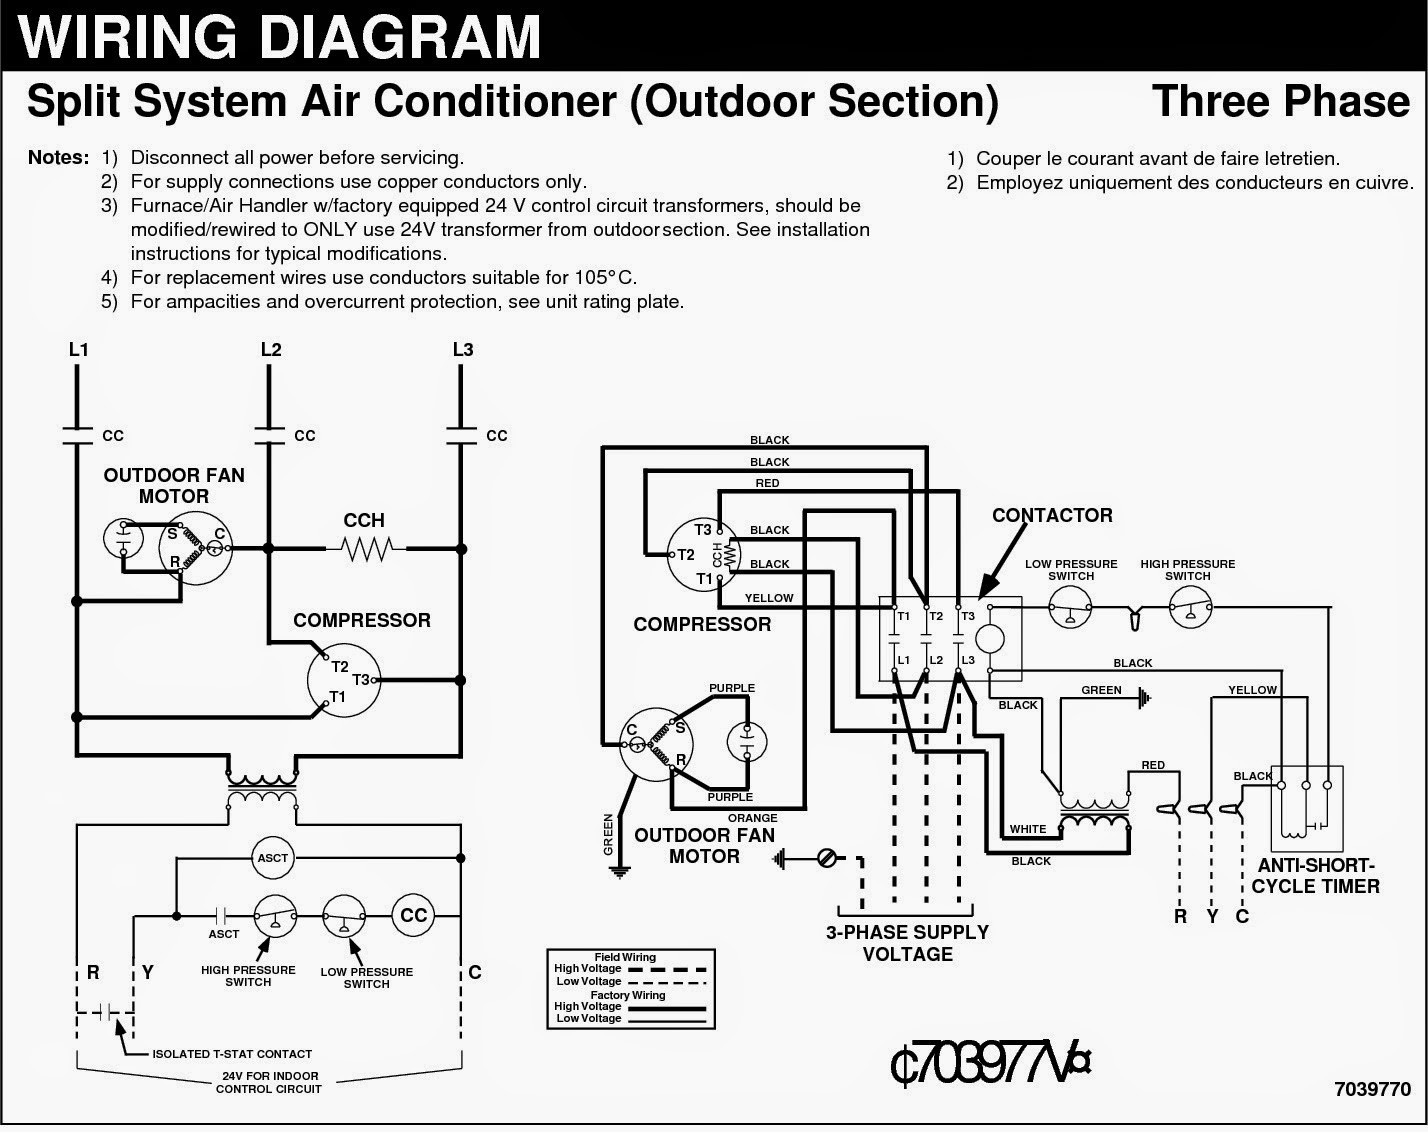 medium resolution of split ac wiring diagram pdf free wiring diagram for you u2022 goodman condenser unit wiring diagram split system ac wiring diagram